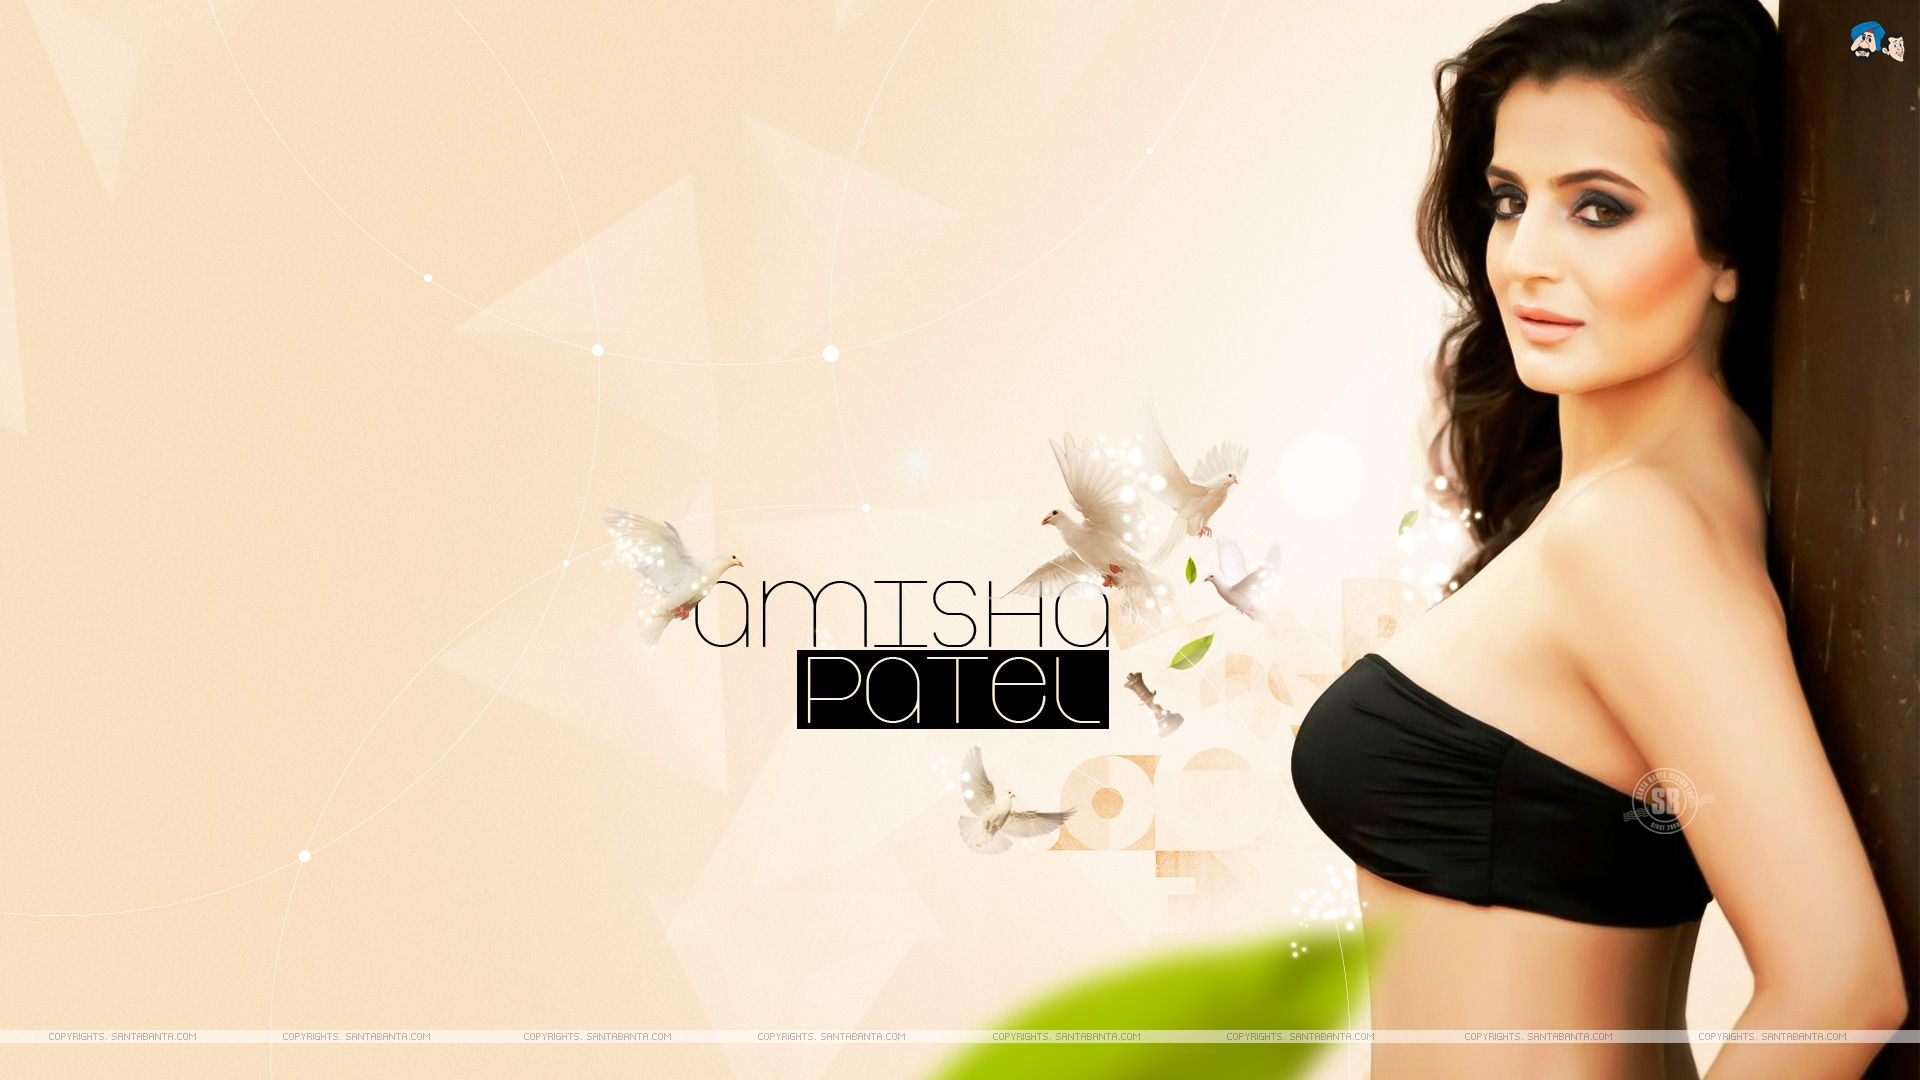 amisha patel hot hd wallpaper #186 | 0176 | pinterest | hd wallpaper